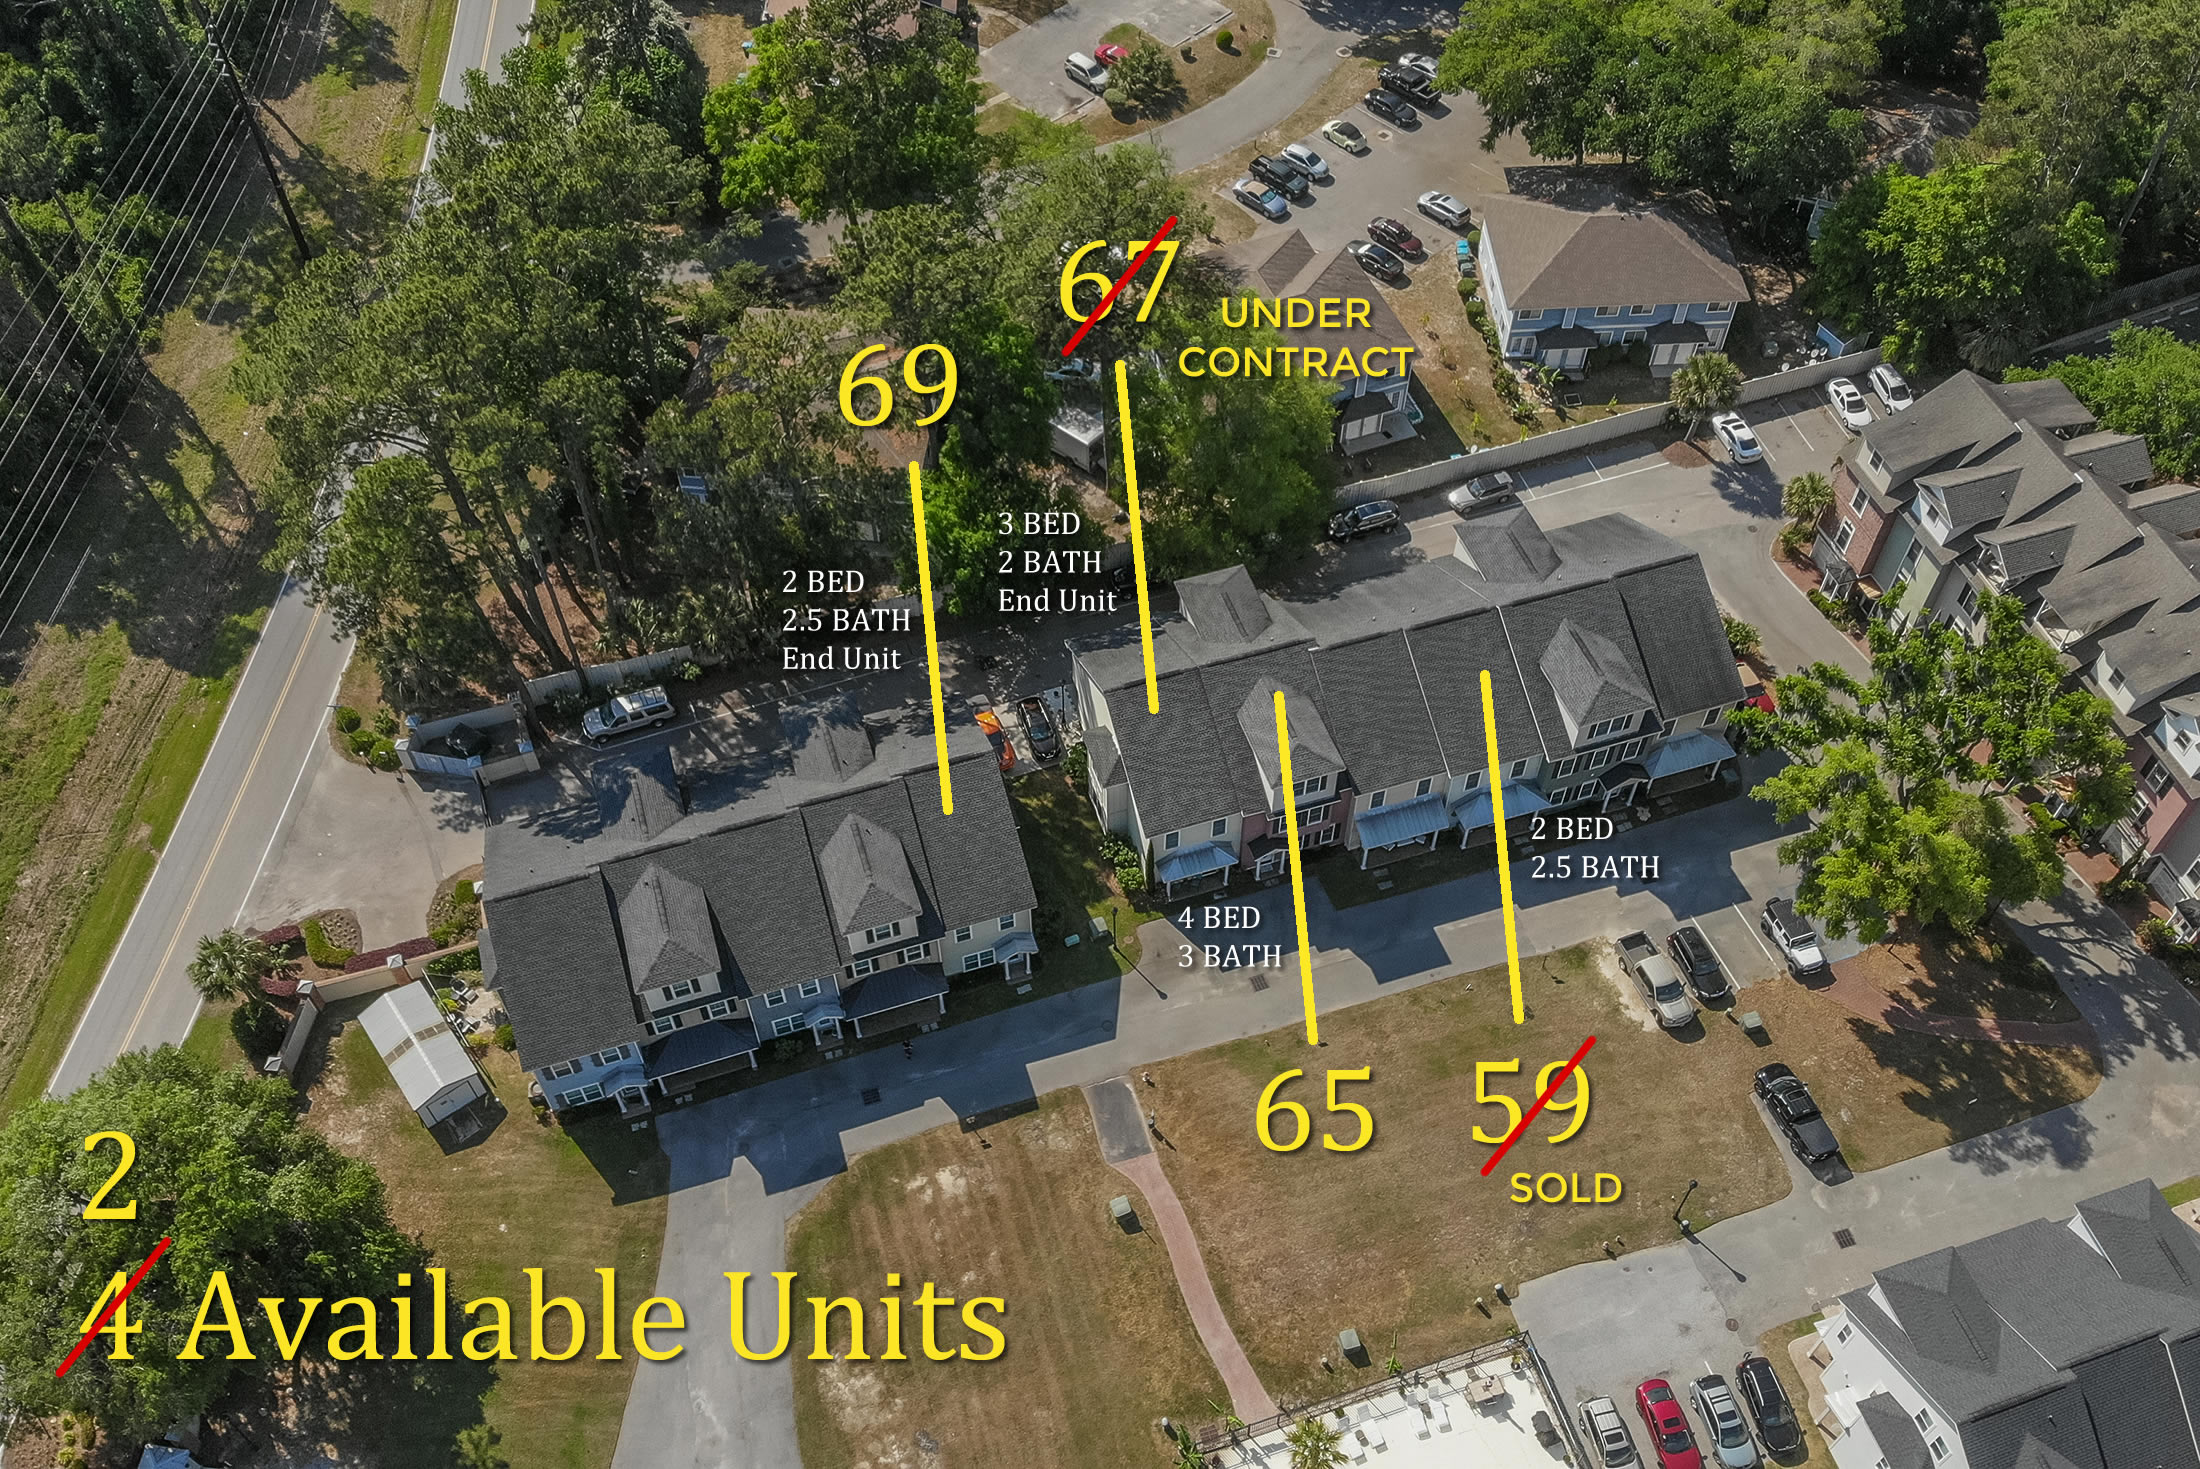 Village at Battery Creek Available Units